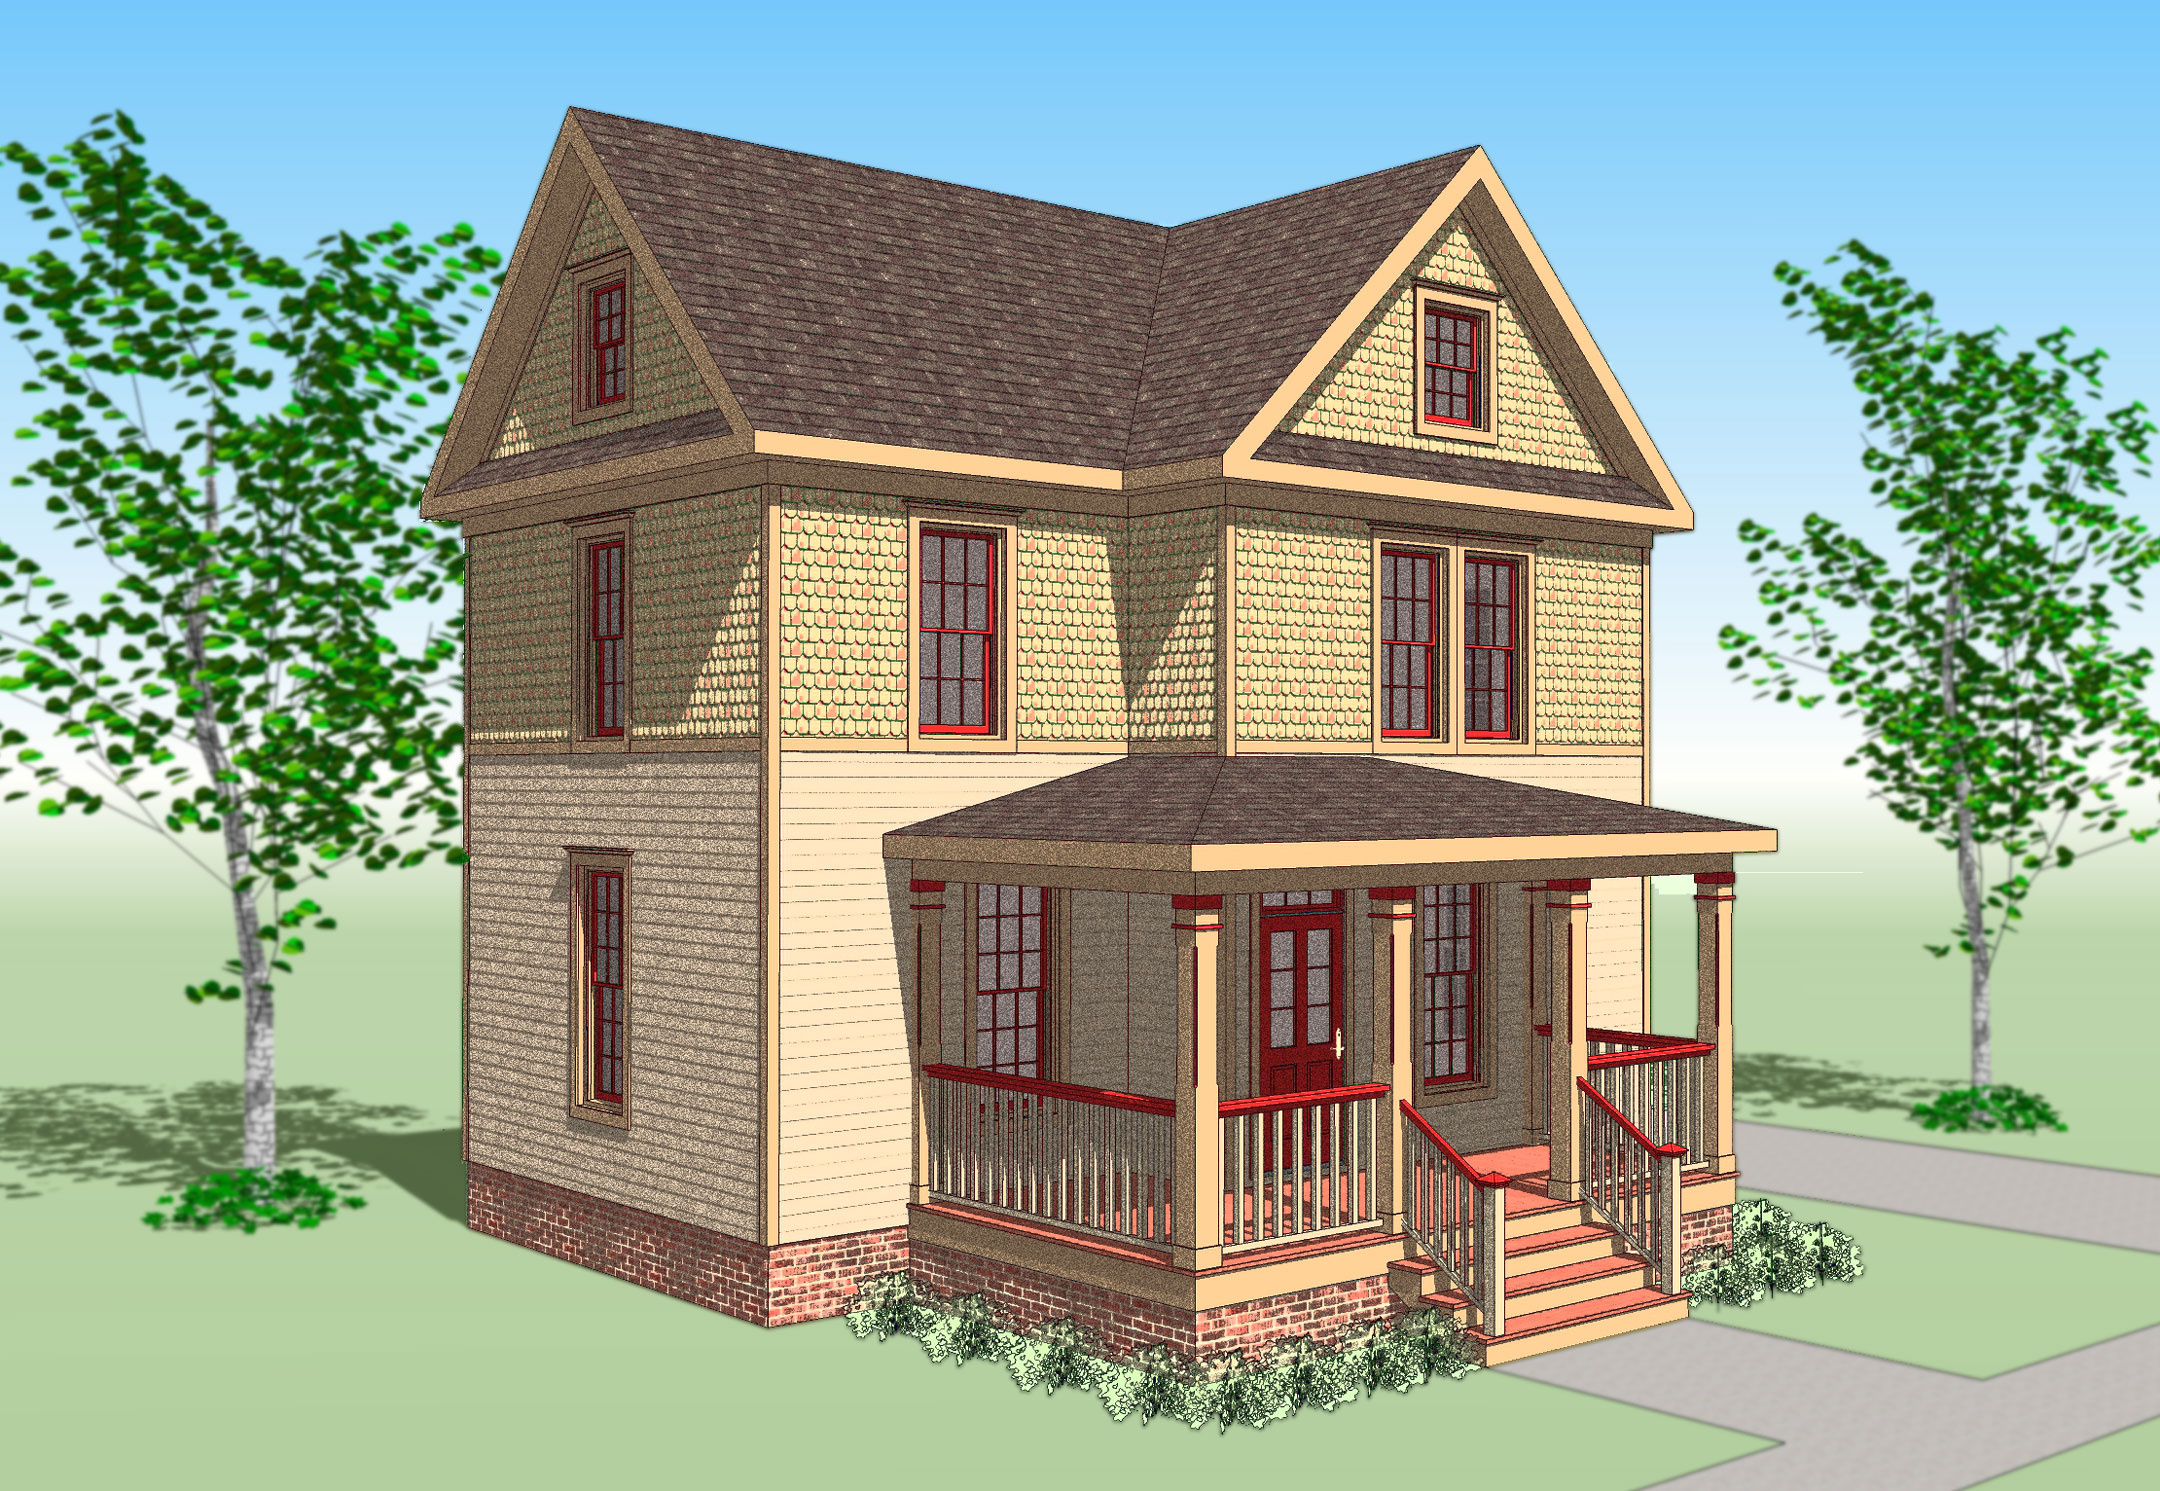 The Sears Victorian  GMF Architects  House Plans GMF Architects  House Plans